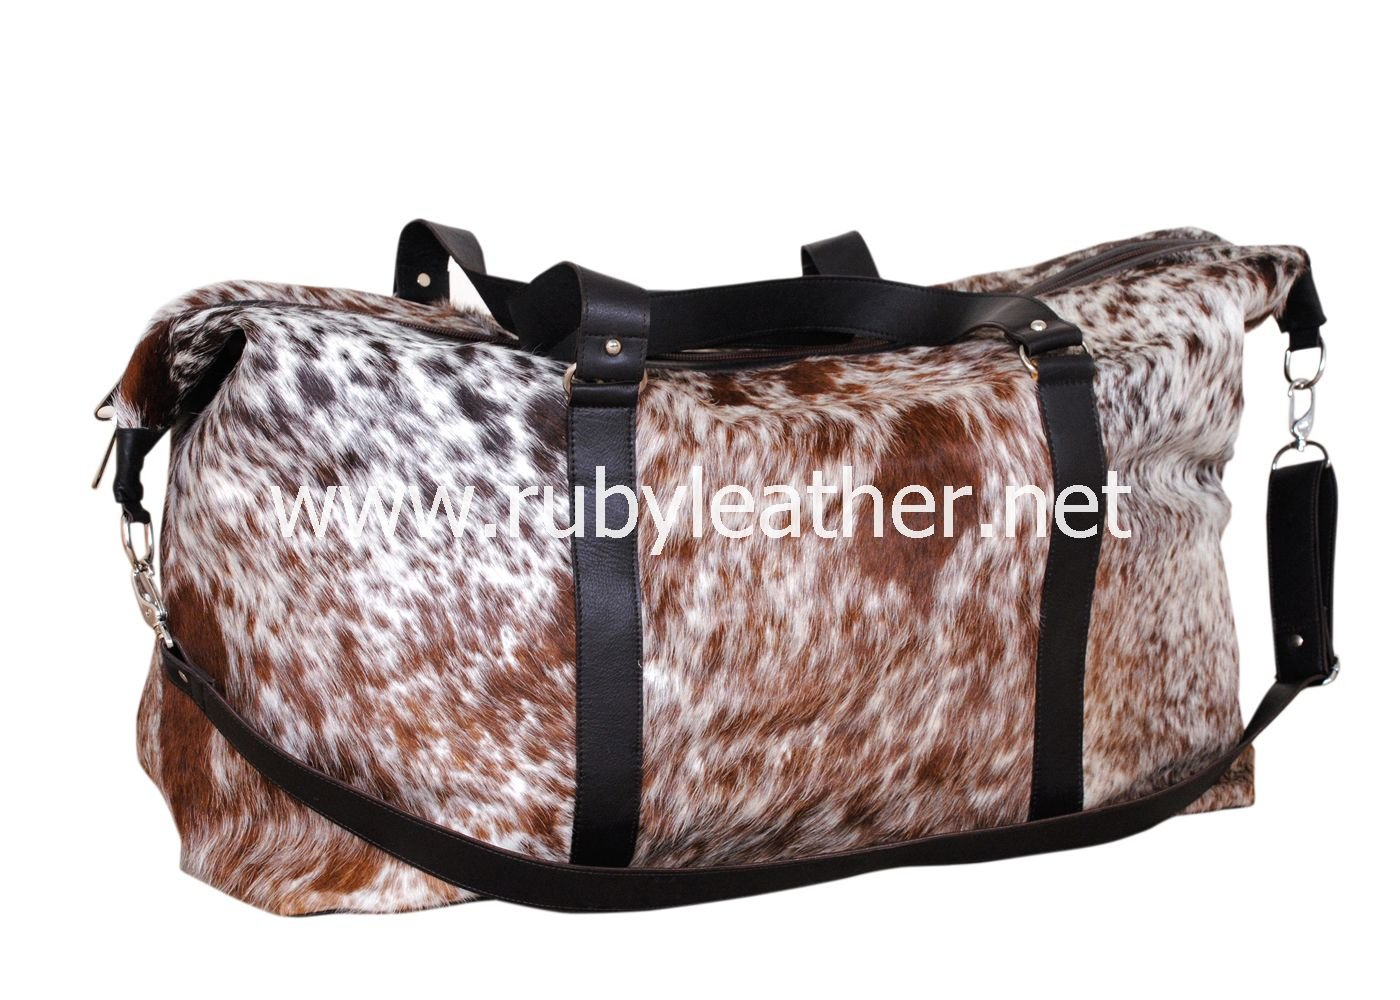 Cowhide leather Duffle bag by Ruby Leather Free Shipping to Australia & NewZealand